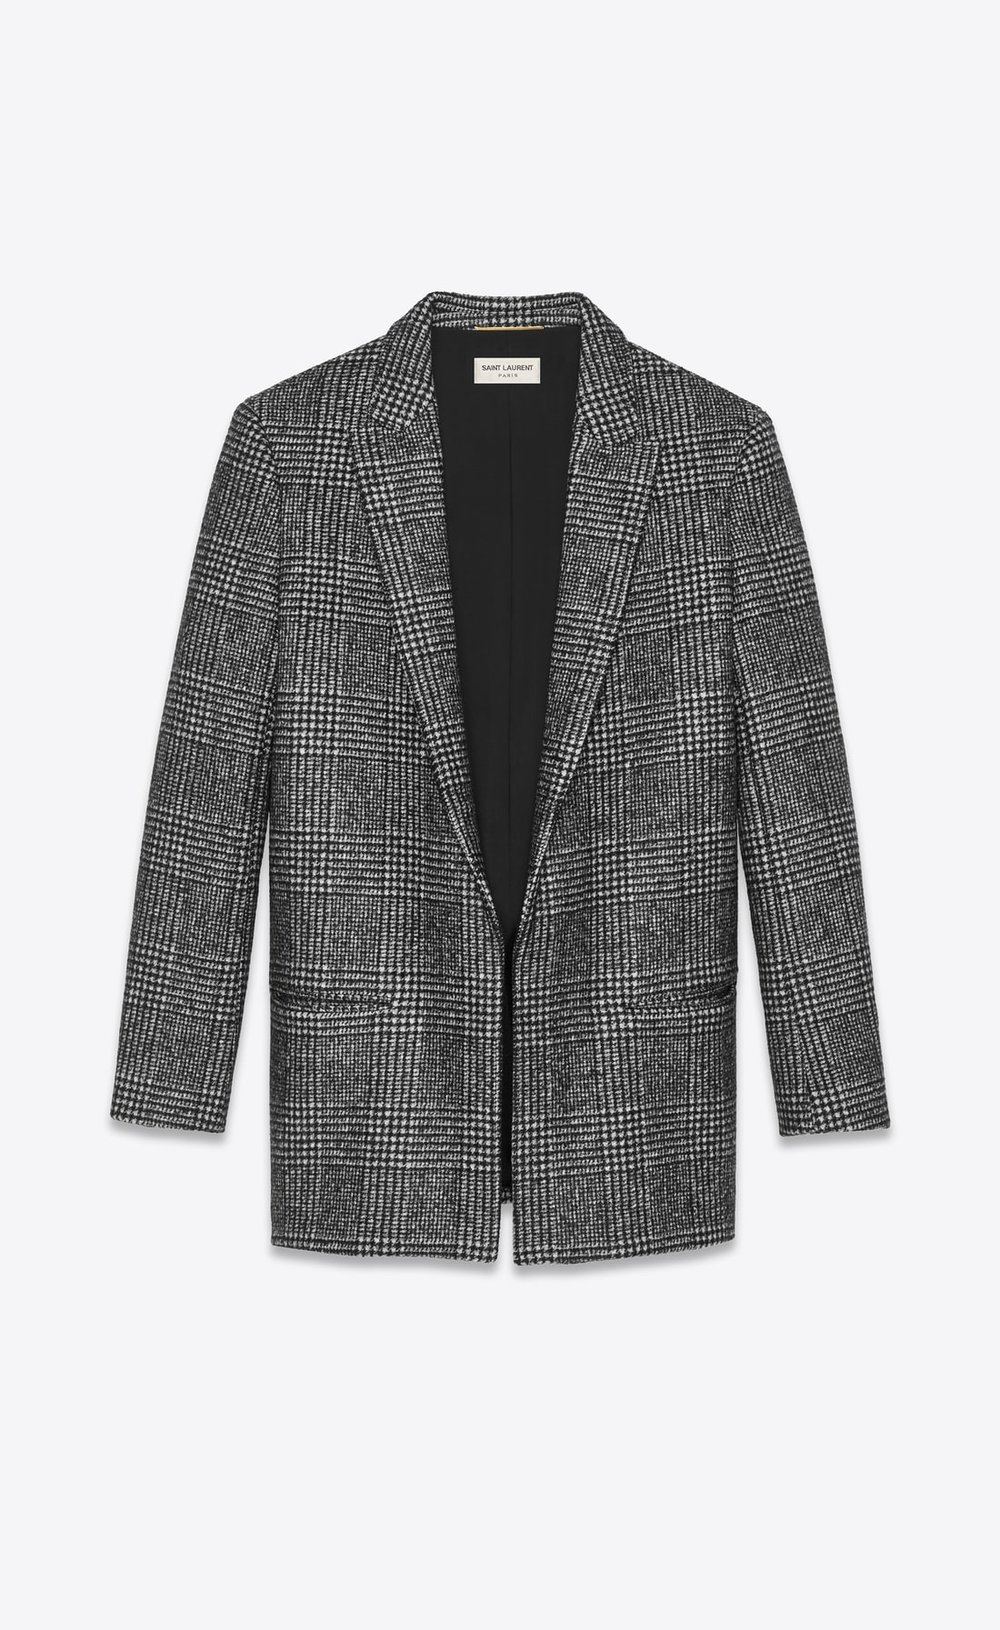 Saint_Laurent_Blazer_FW18